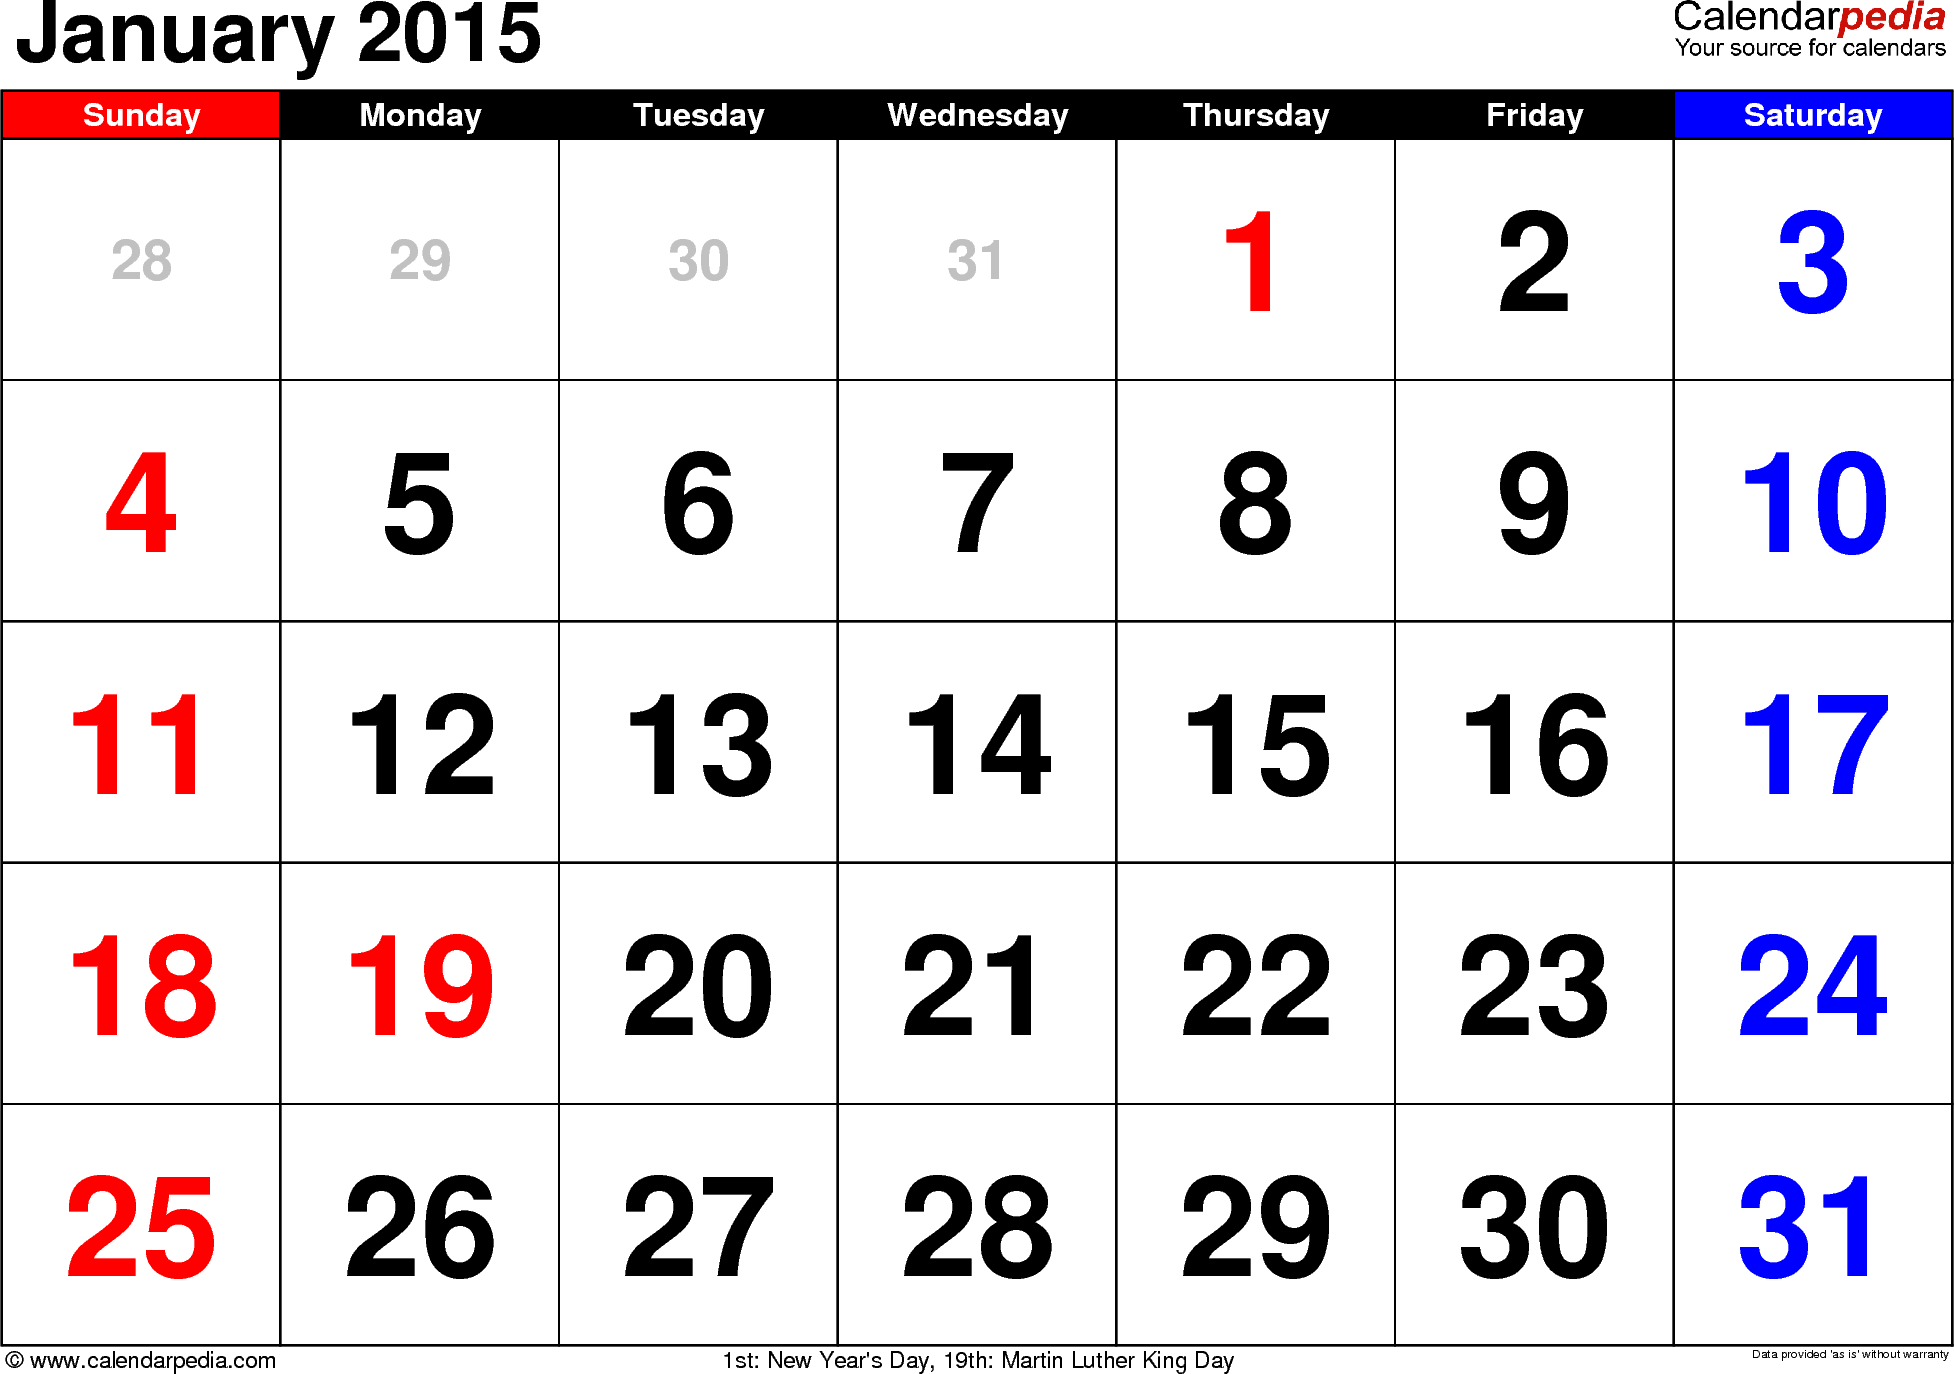 January 2015 calendar, landscape orientation, large numerals, available as printable templates for Word, Excel and PDF